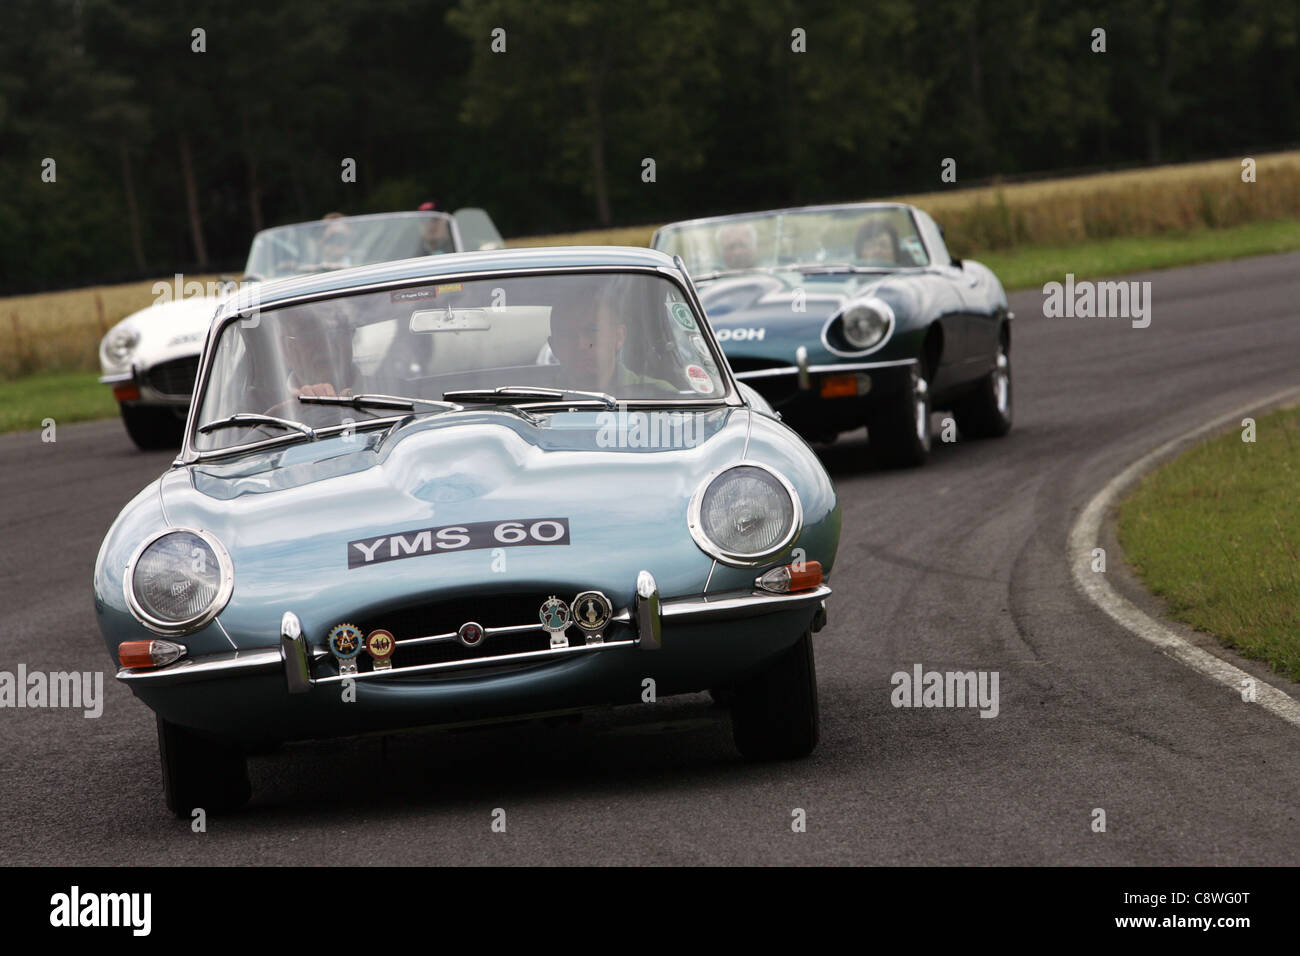 E type jaguars at Croft Motor Racing Circuit, North Yorkshire. - Stock Image